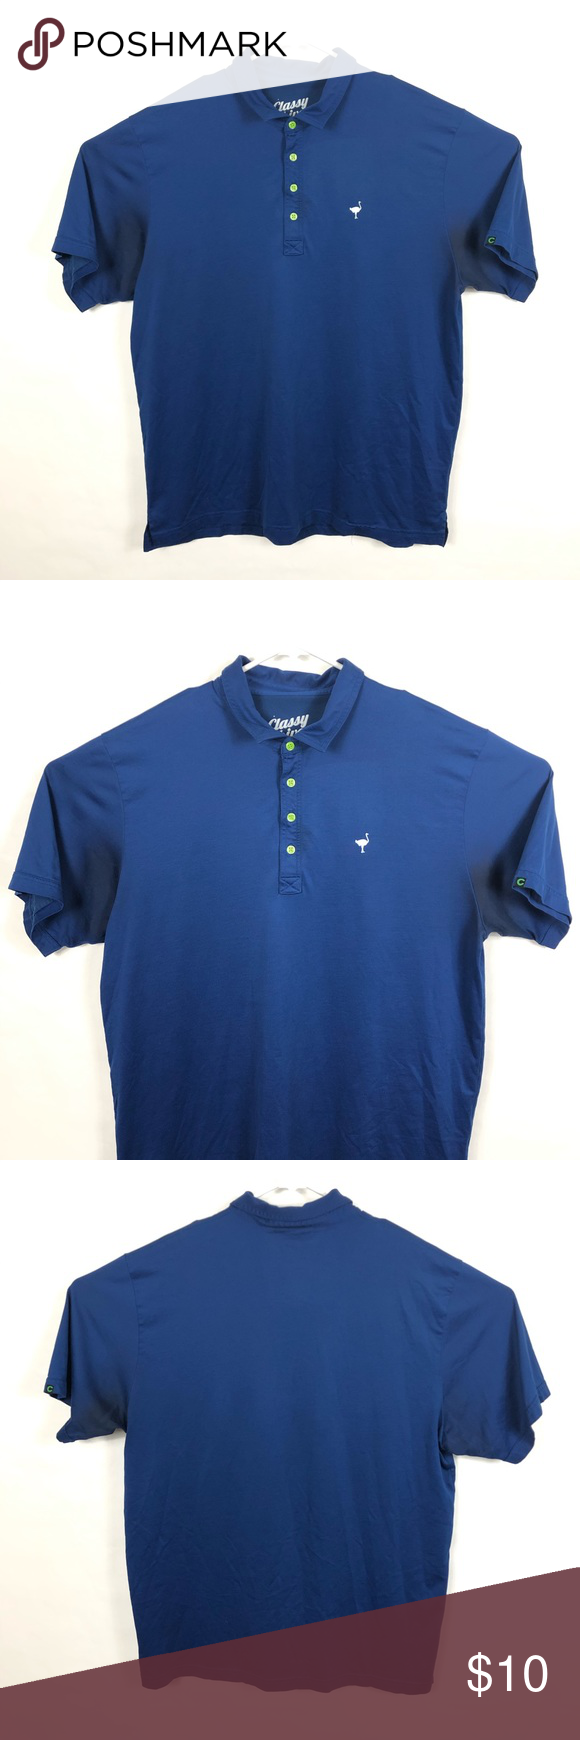 Chiver Classy 2xl Polo Shirt Blue Chiver Classy Blue 2xl Cotton Polyester Blend Polo Shirt Size 2xl 60 Cotton 40 Poly Made In Shirts Blue Shirts Polo Shirt